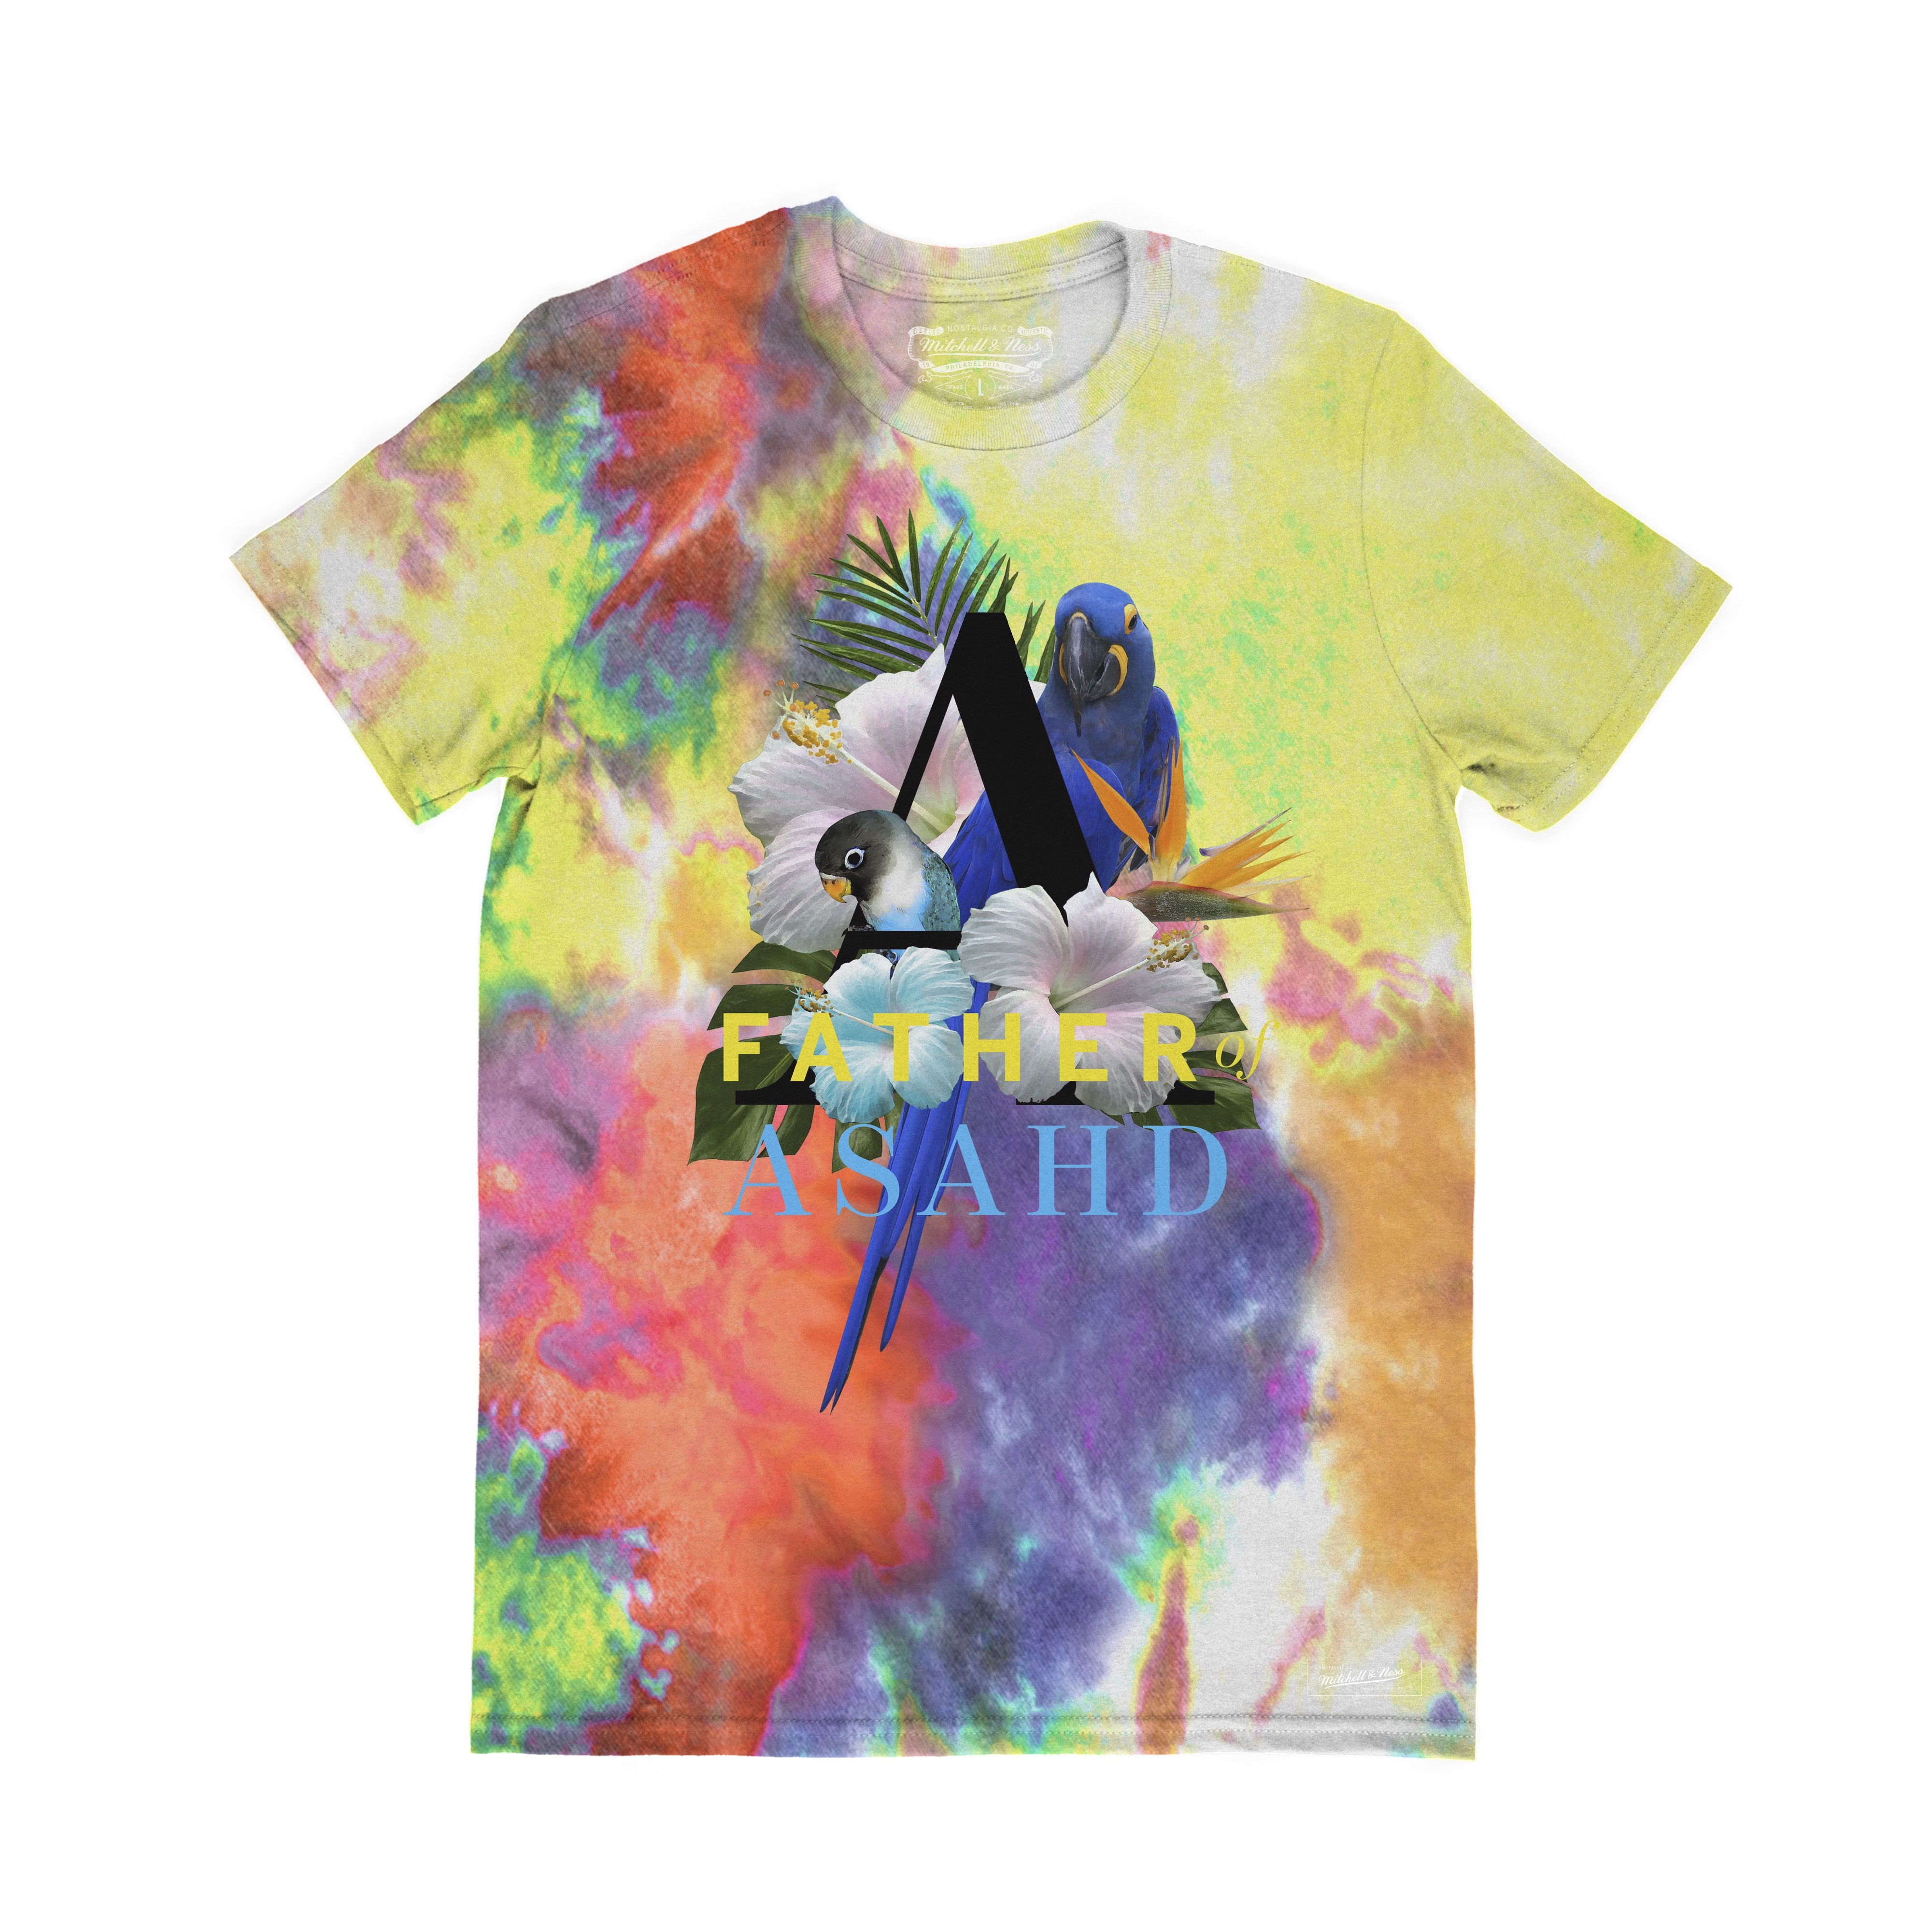 Father of Asahd x Mitchell & Ness Tie-Dye T-Shirt